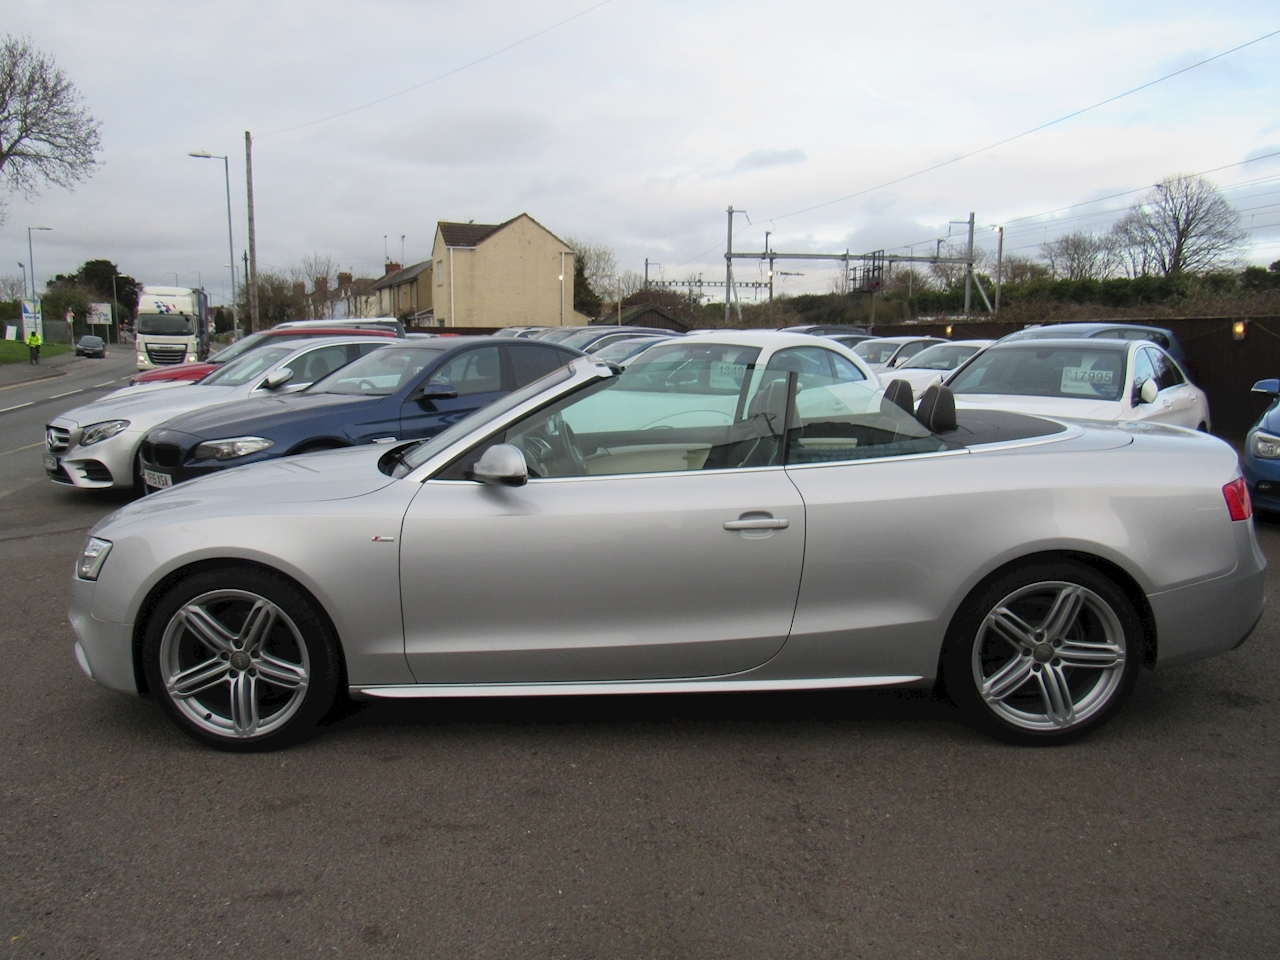 Audi A5 Tdi S Line Special Edition Convertible 2.0 Cvt Diesel